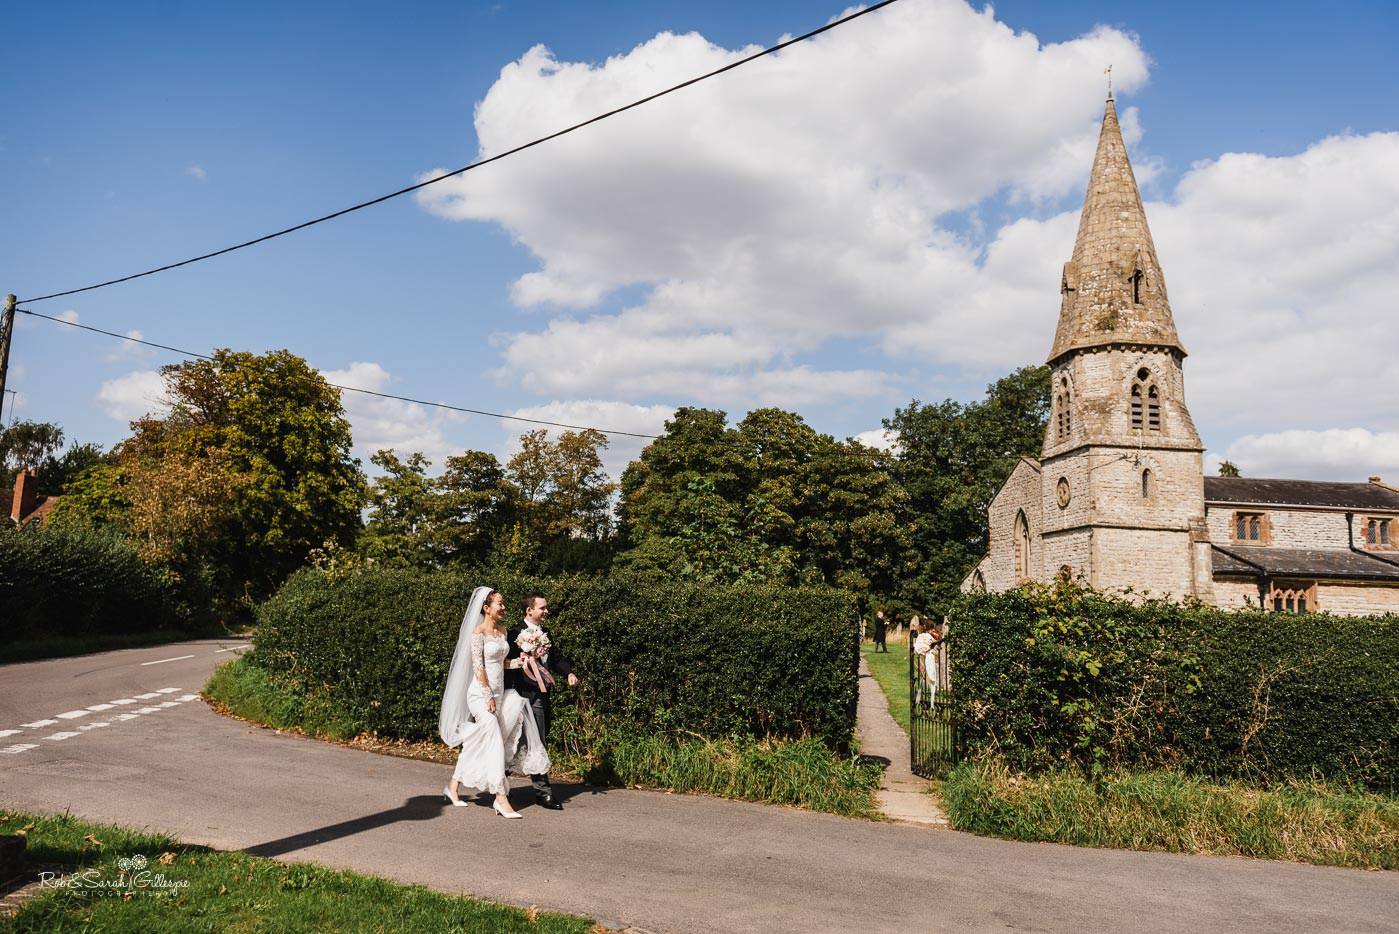 Bride and groom at Bourton-on-Dunsmore church